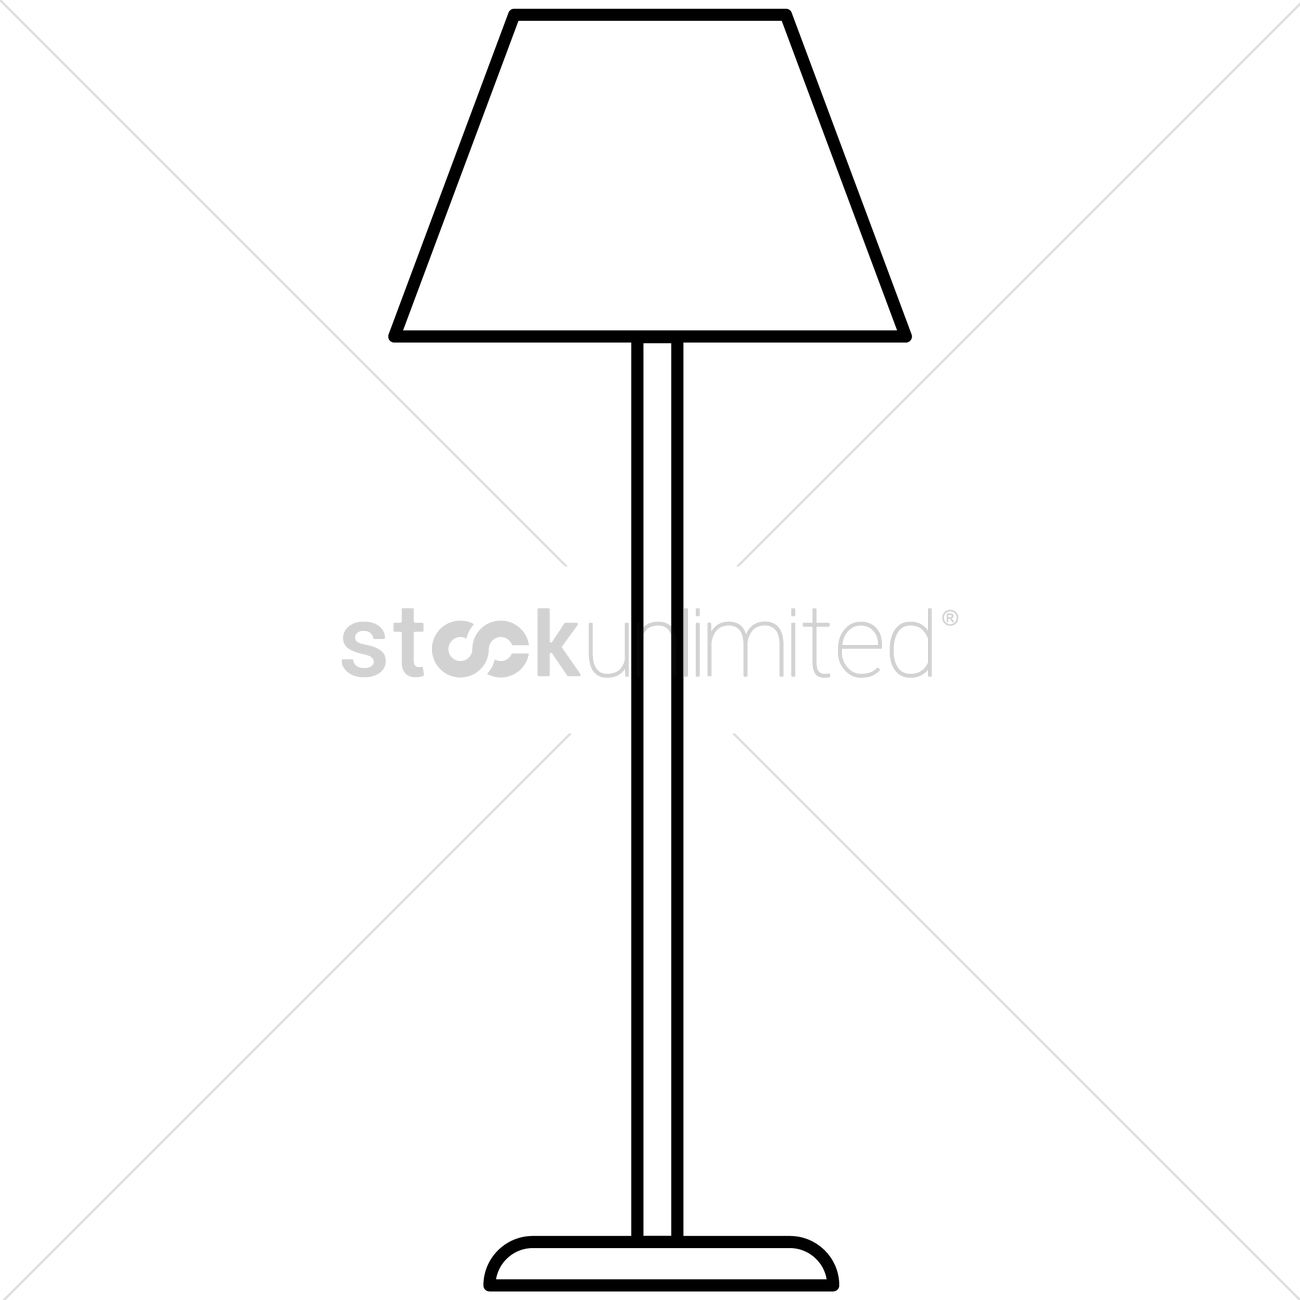 Light stand clipart clipart images gallery for free download.